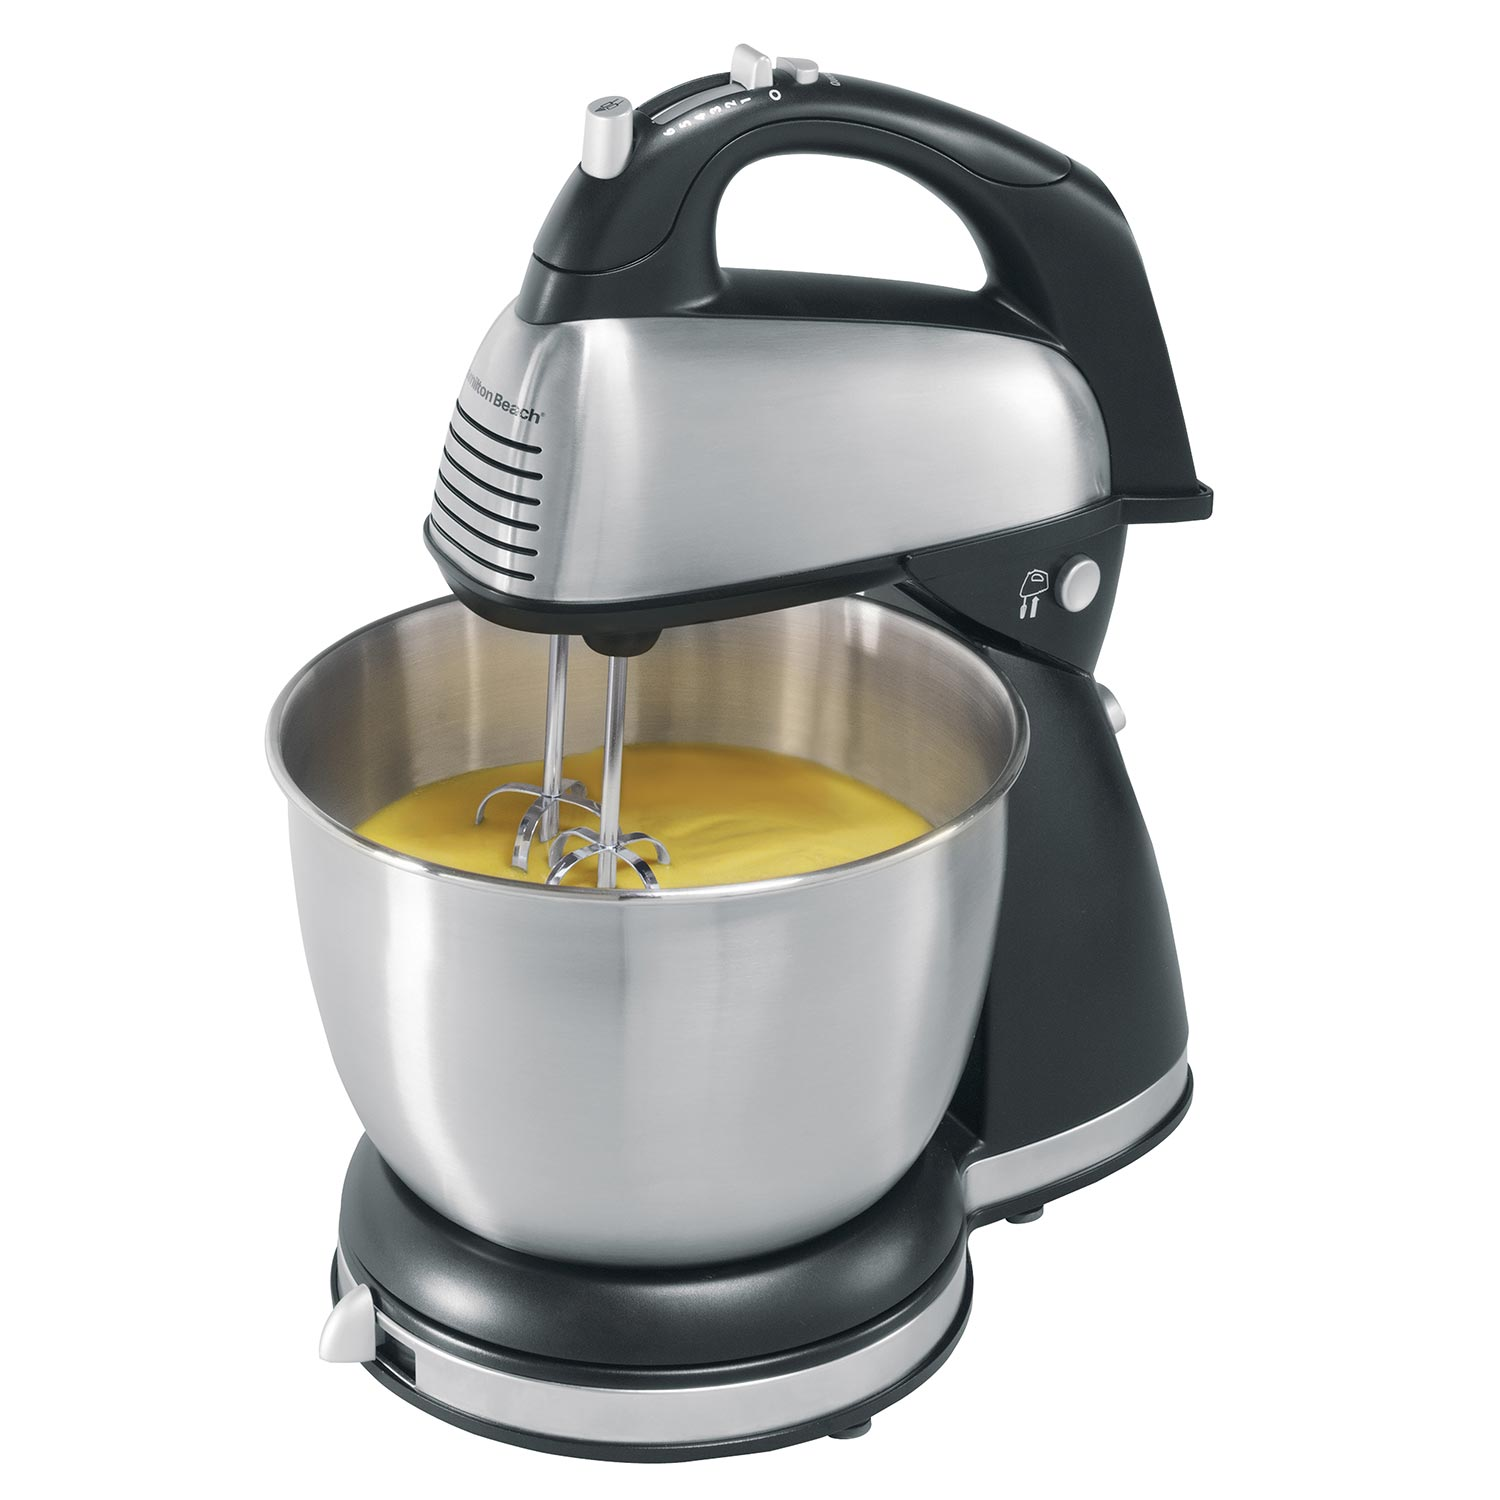 6 Speed Stand Mixer (64651)